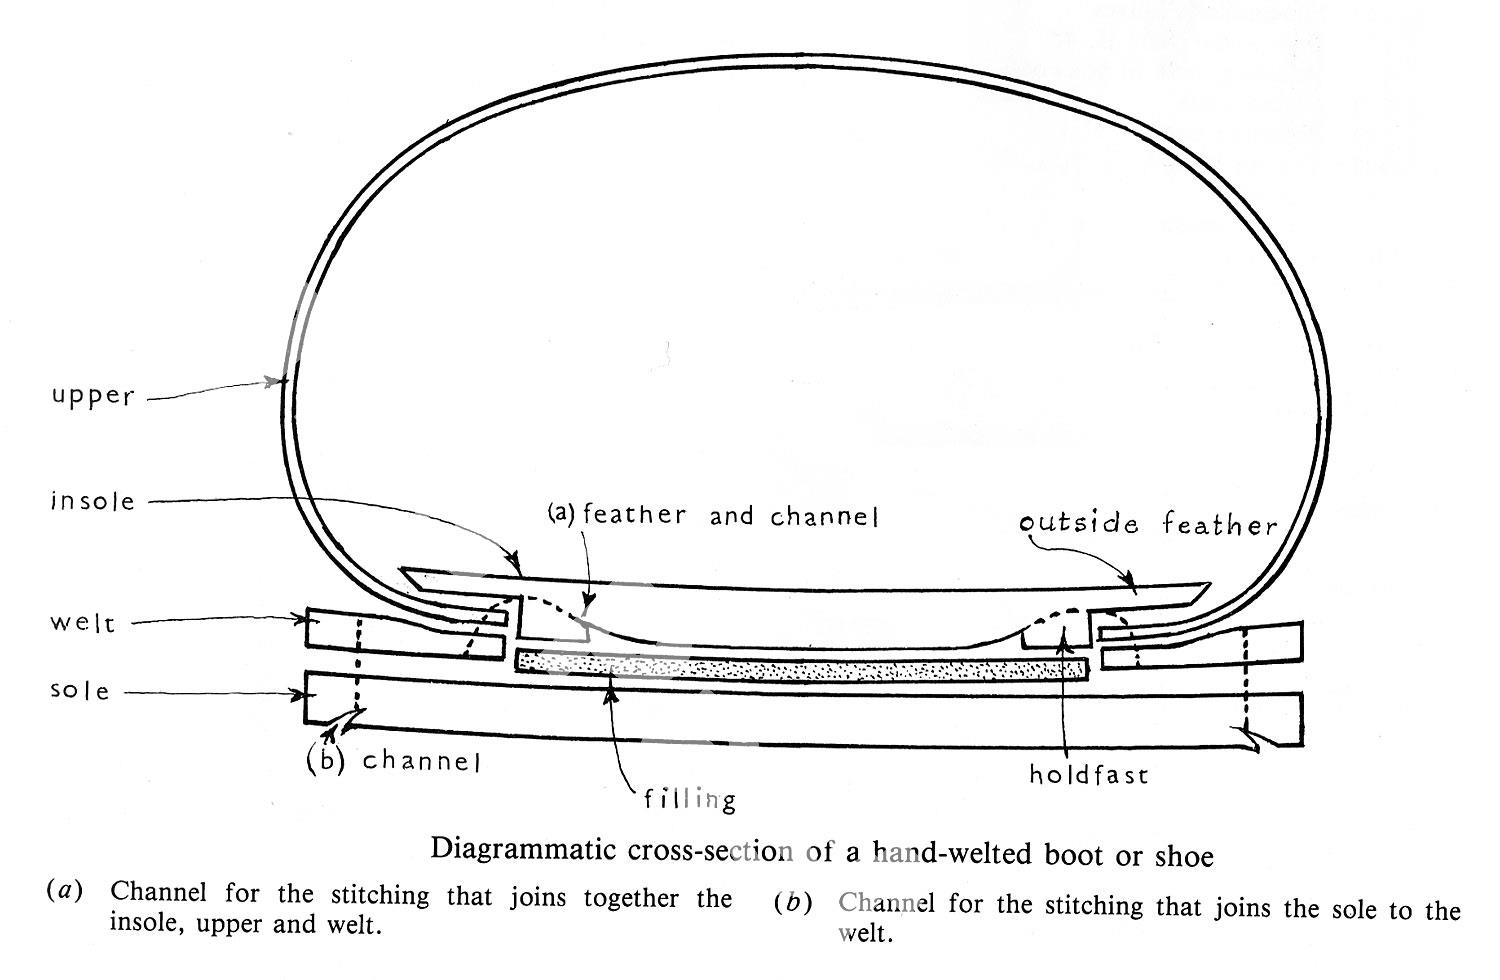 hight resolution of cross section diagram showing shoe construction